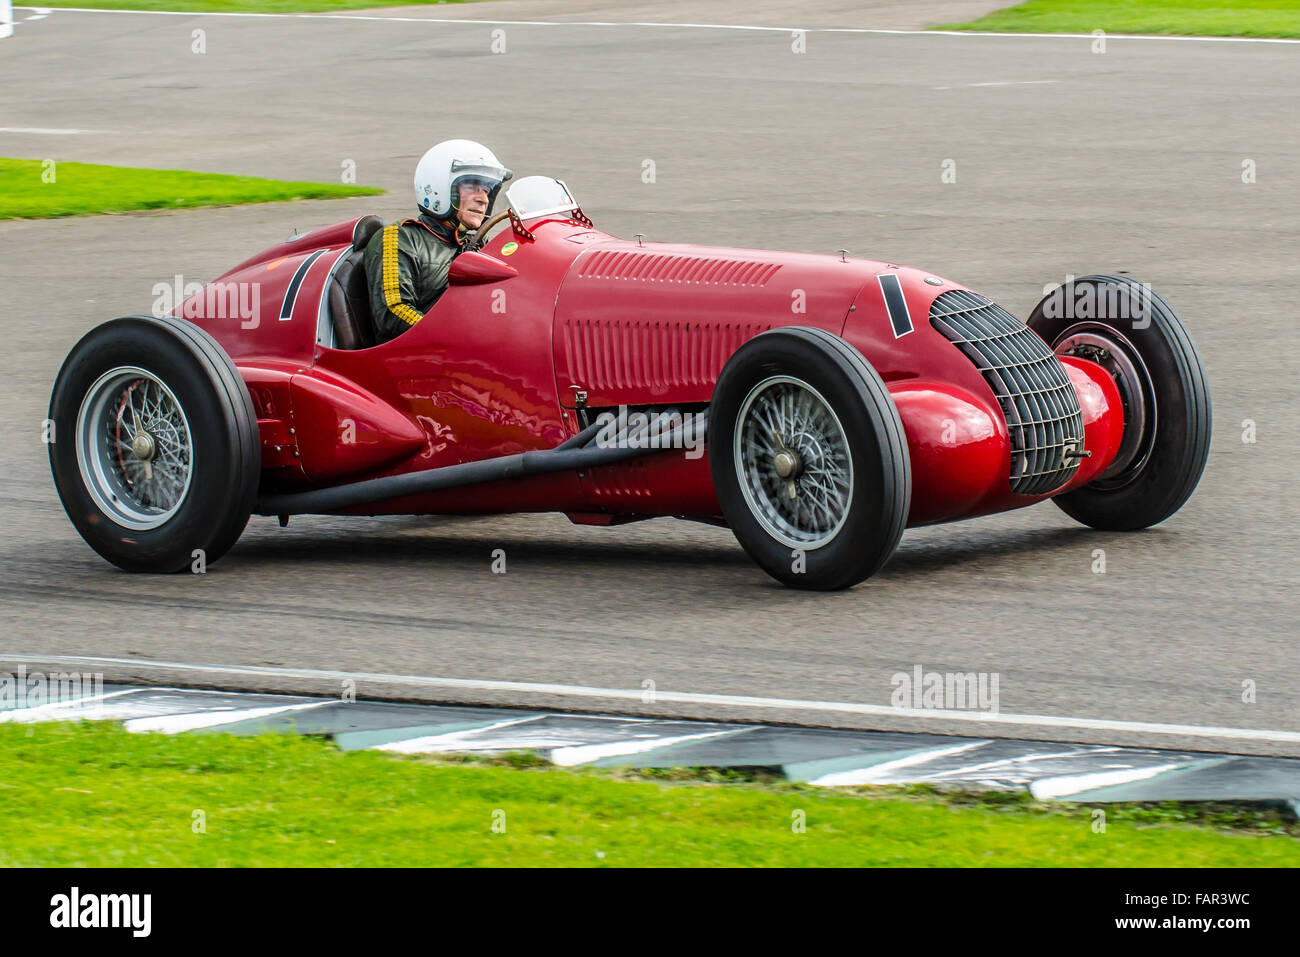 the alfa romeo 308 or 8c 308 is a grand prix racing car made for the stock photo royalty free. Black Bedroom Furniture Sets. Home Design Ideas